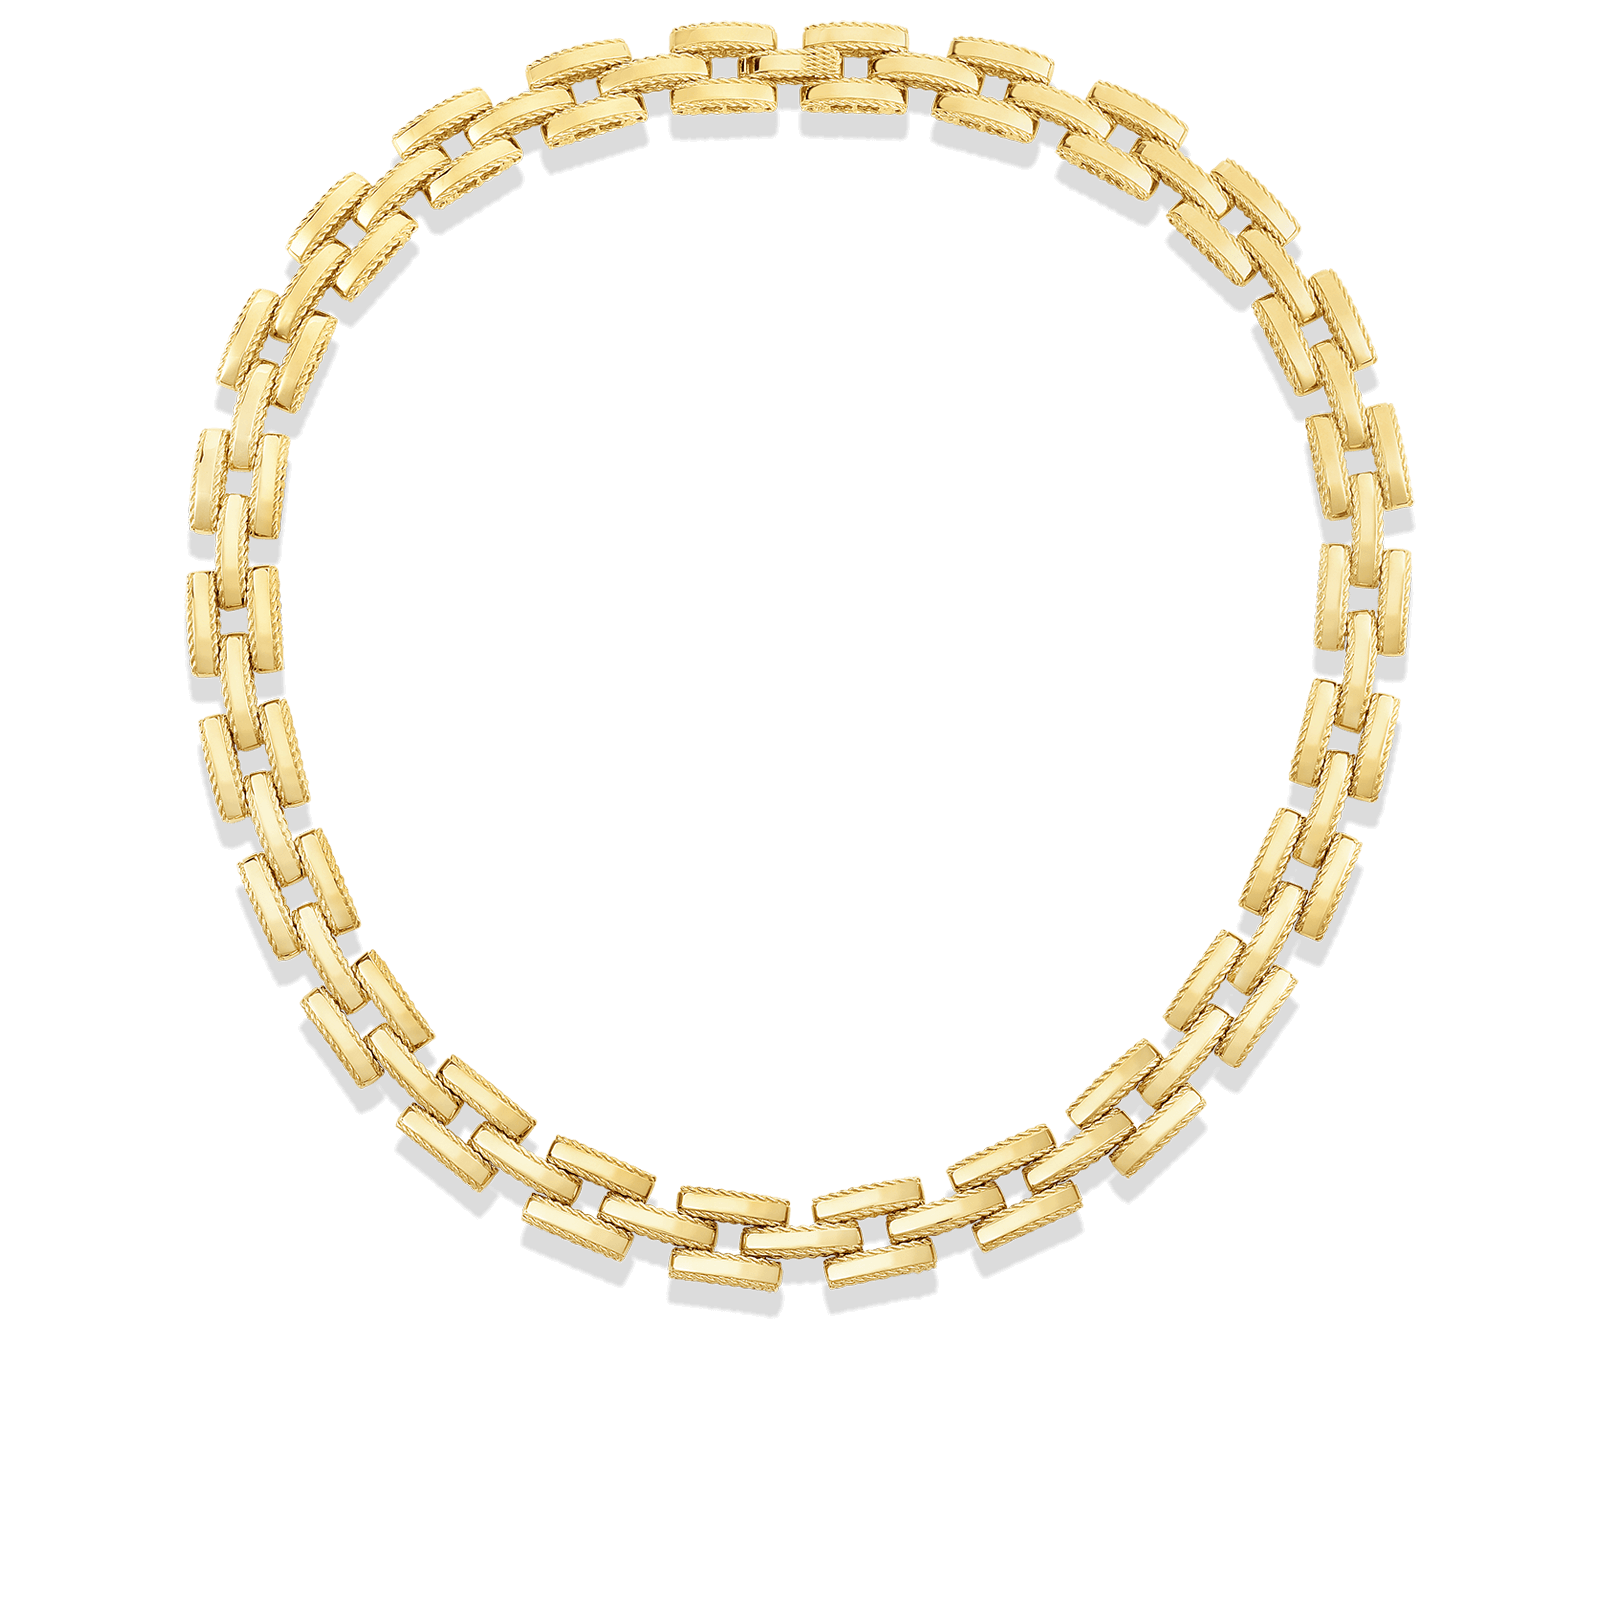 Roberto-Coin-18k-yellow-gold-Retro-Link-Collar-7771394AYCH0alt